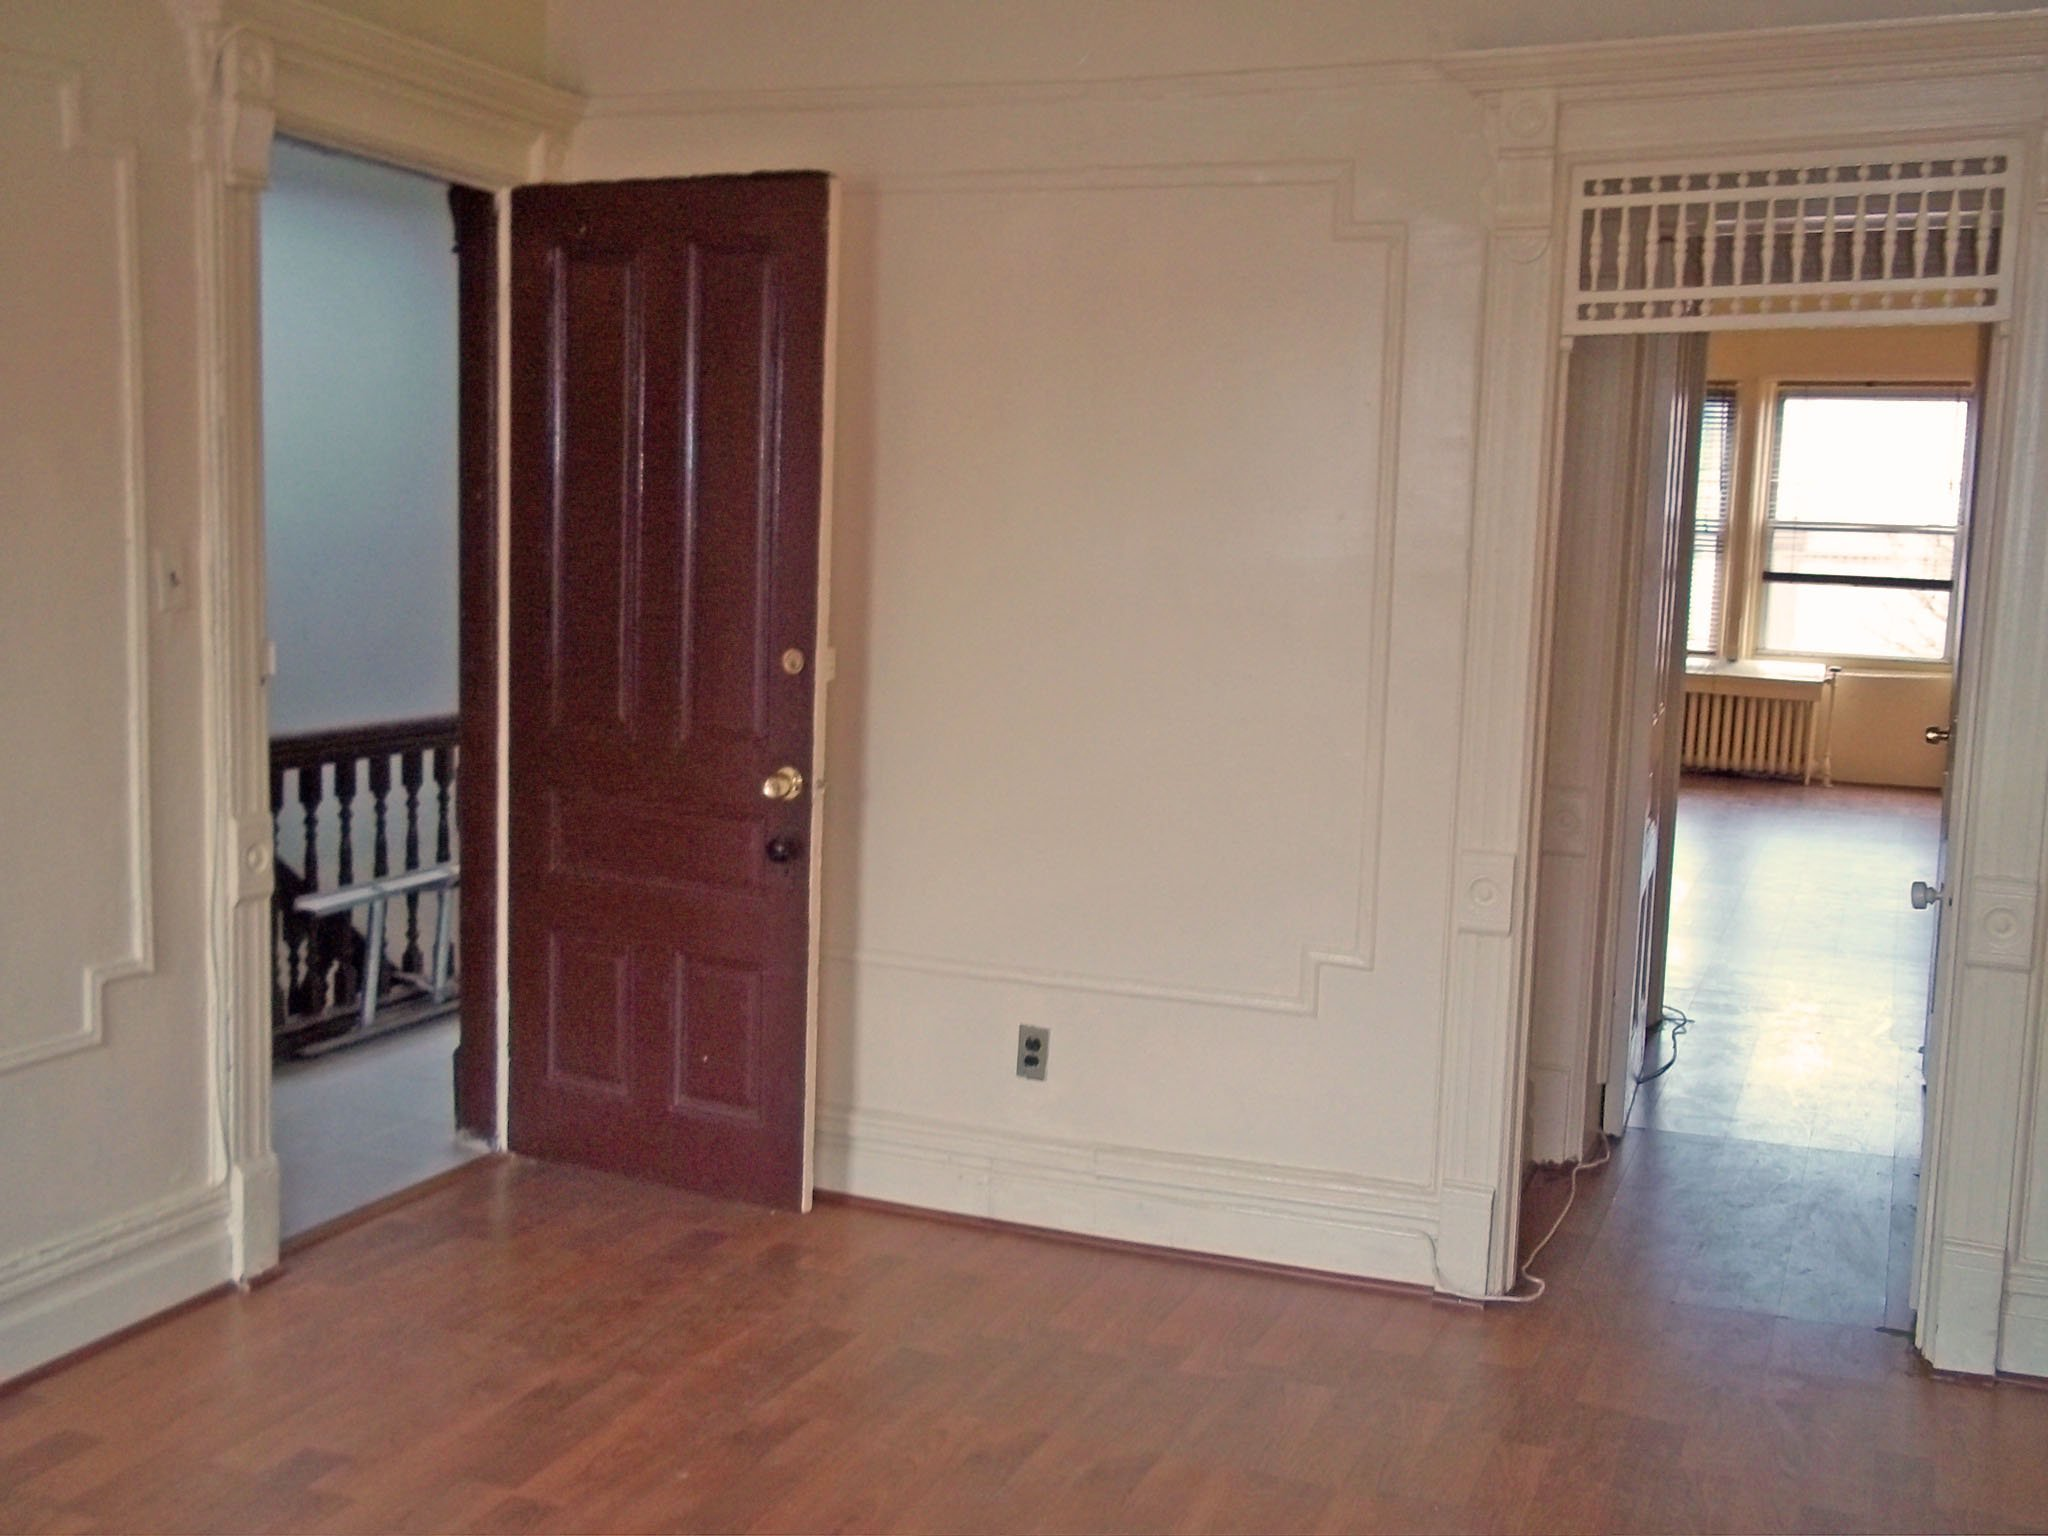 Best Bedford Stuyvesant 1 Bedroom Apartment For Rent Brooklyn With Pictures Original 1024 x 768